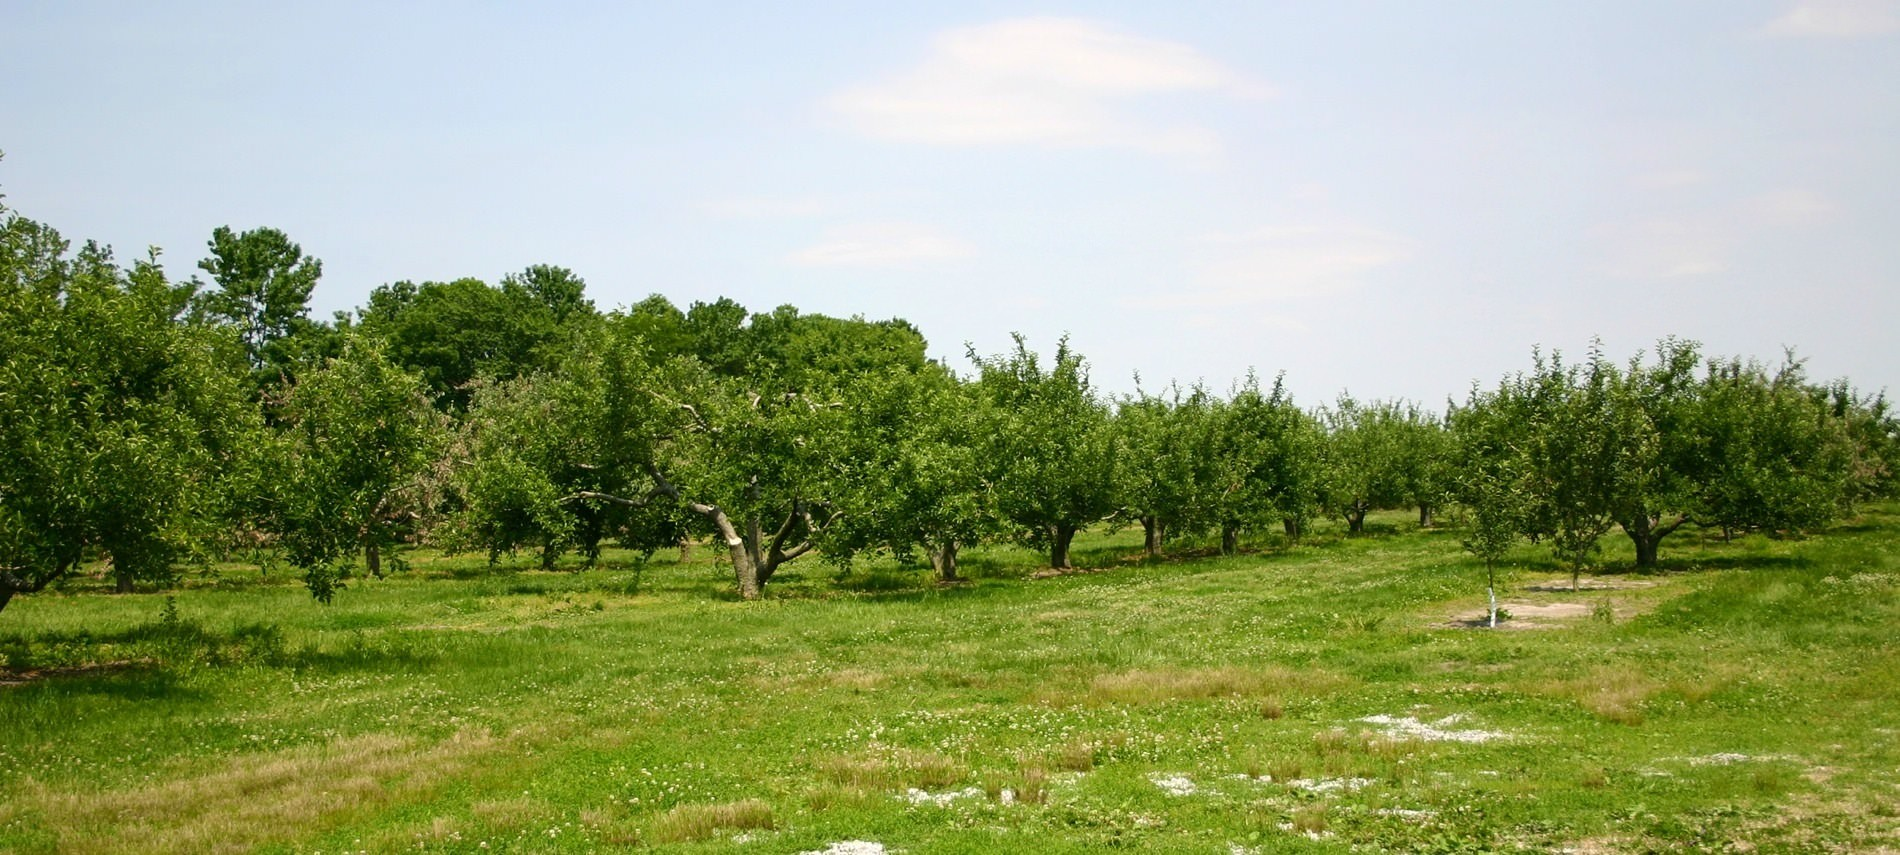 A large orchard with varying size of bushes and trees. Grass in front with clear blue sky and fluffy clouds.